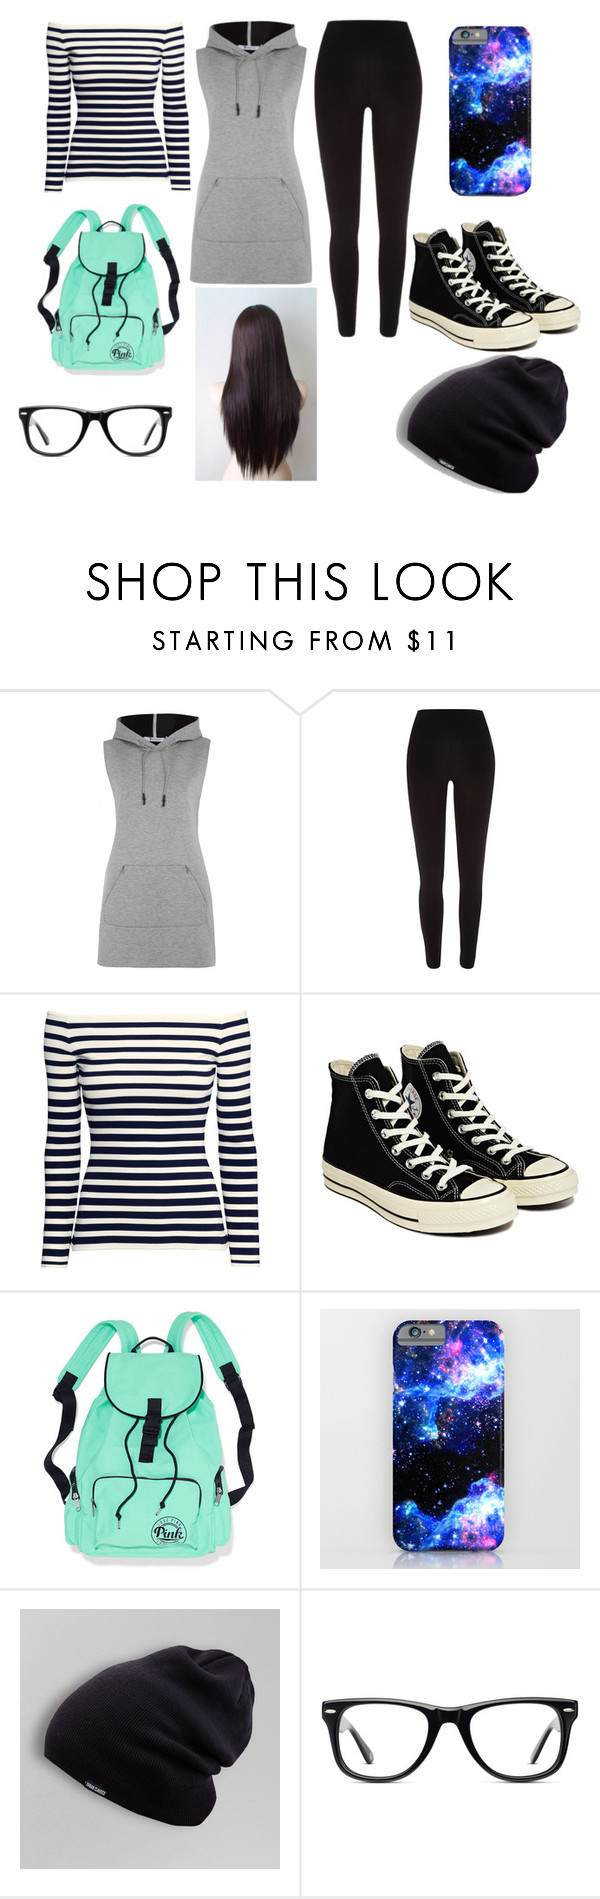 """""""School Day"""" by huebleki ❤ liked on Polyvore featuring T By Alexander Wang, River Island, H&M, Converse and Muse"""